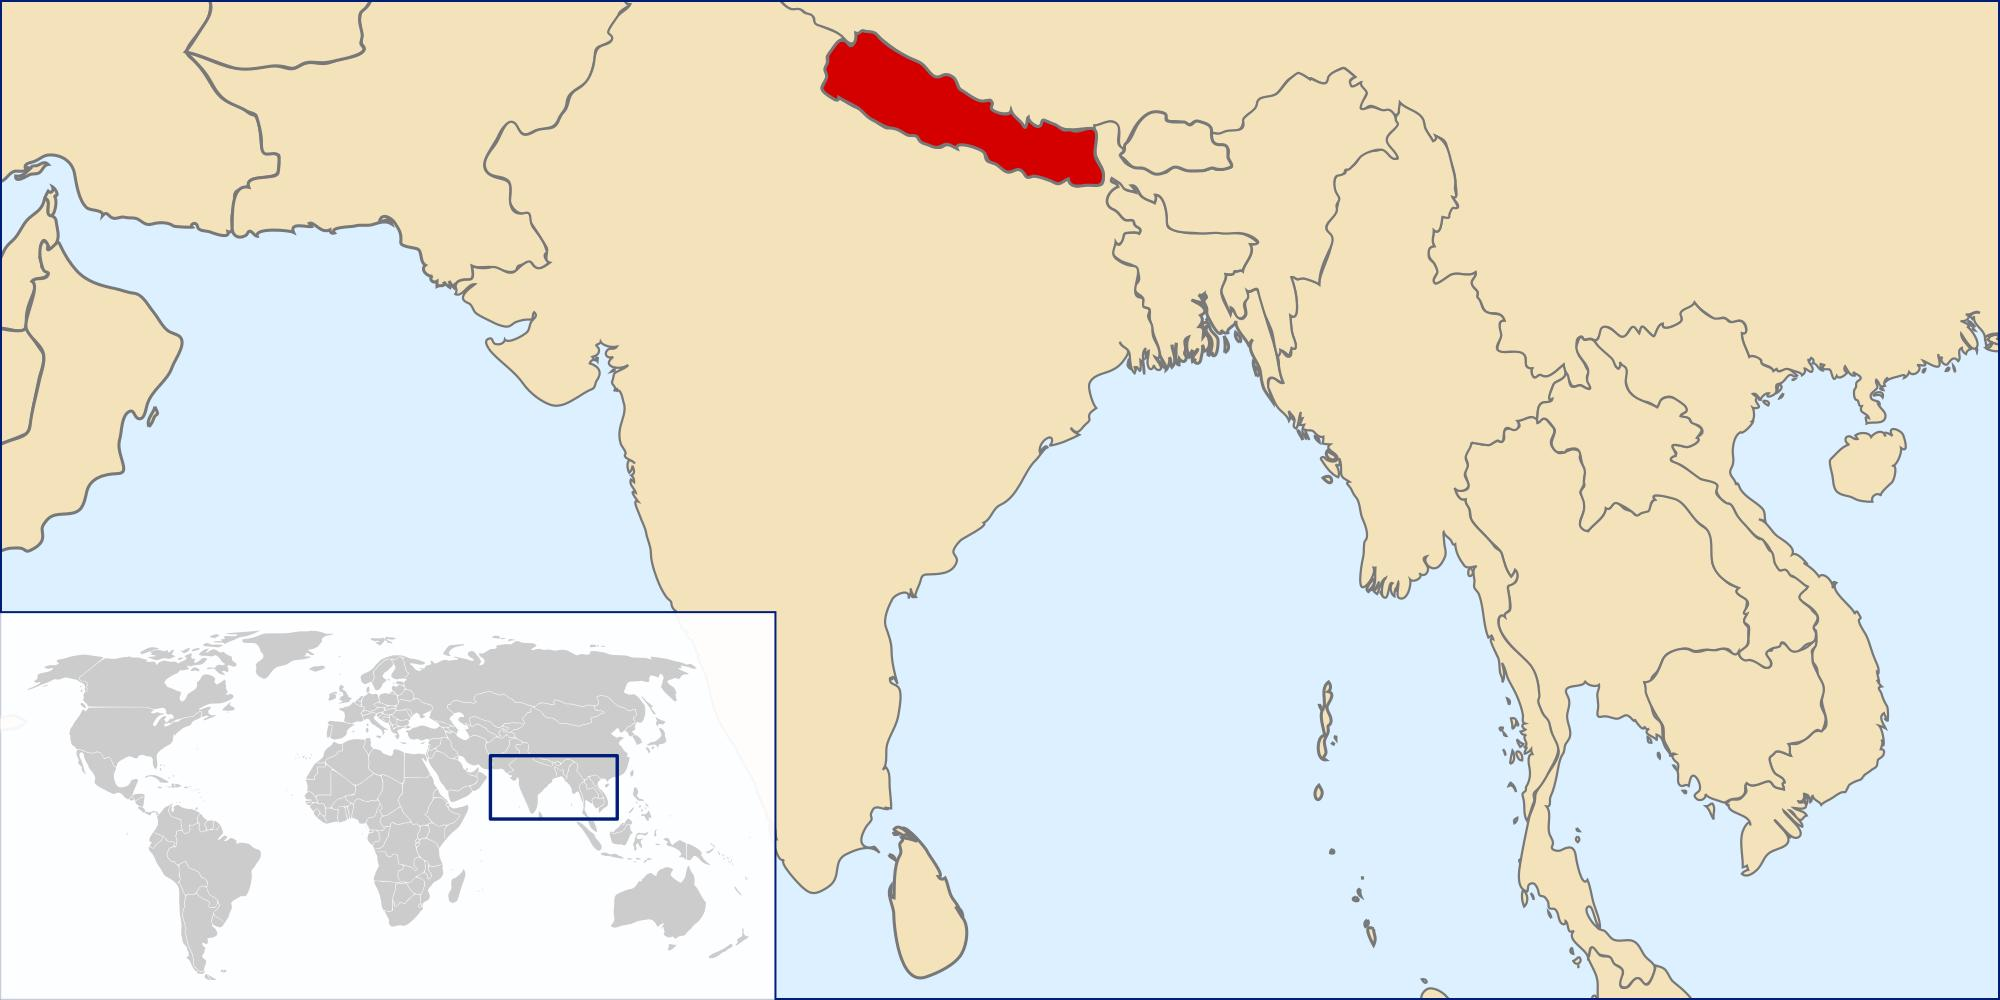 Nepal location on world map - Map of nepal location on world ... on madagascar location in world map, northern and southern hemisphere world map, turks and caicos on a map, cities in greenland on a map, japanese world map, kathmandu nepal world map, guyana location in world map, nepal earthquake 2015 map, uae united arab emirates world map, greenland in world map, kathmandu nepal road map, fiji location in world map, madagascar country world map, the himalayas mountains located on the world map, black and white world map, full world map, georgia blairsville ga on map, honiara solomon islands world map, cajamarca peru on a map, mount everest, sri lanka, brazil on the world map,